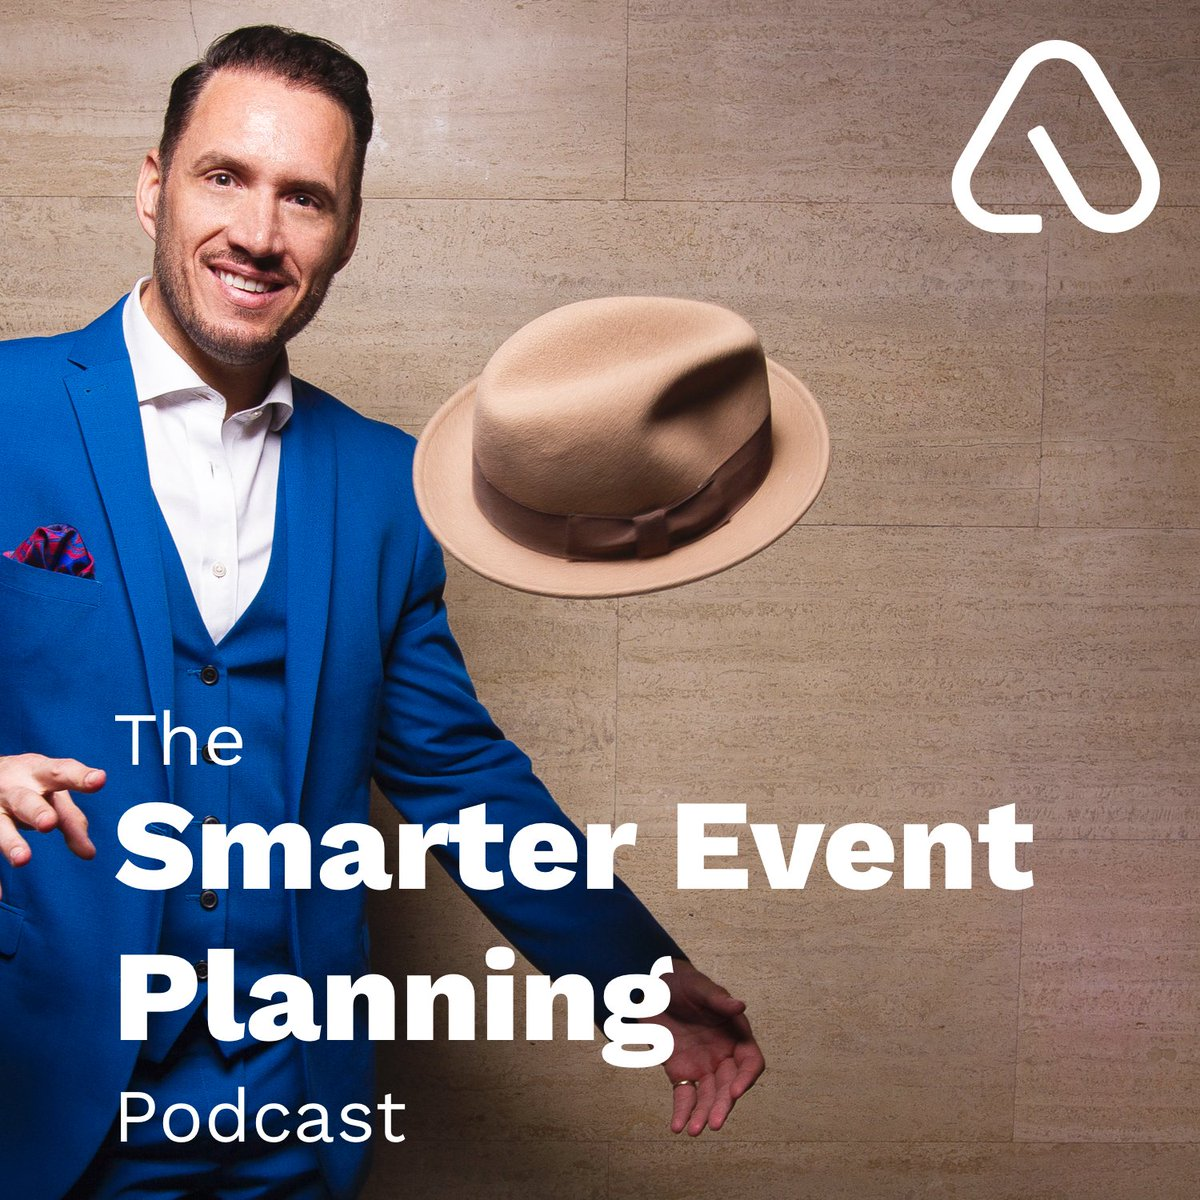 The #SmarterEventPlanning #Podcast episode 2 is out &amp; ready for download! Tune into an inspiring catchup with @Penthouselord  &amp; pioneering thought-leader, Leah Carter now. Click here now for more details =&gt;  https:// bit.ly/2EbwtOb  &nbsp;   #MICE #eventprofs #eventplanning #EventprofsTalk<br>http://pic.twitter.com/NGxA4NvmSt